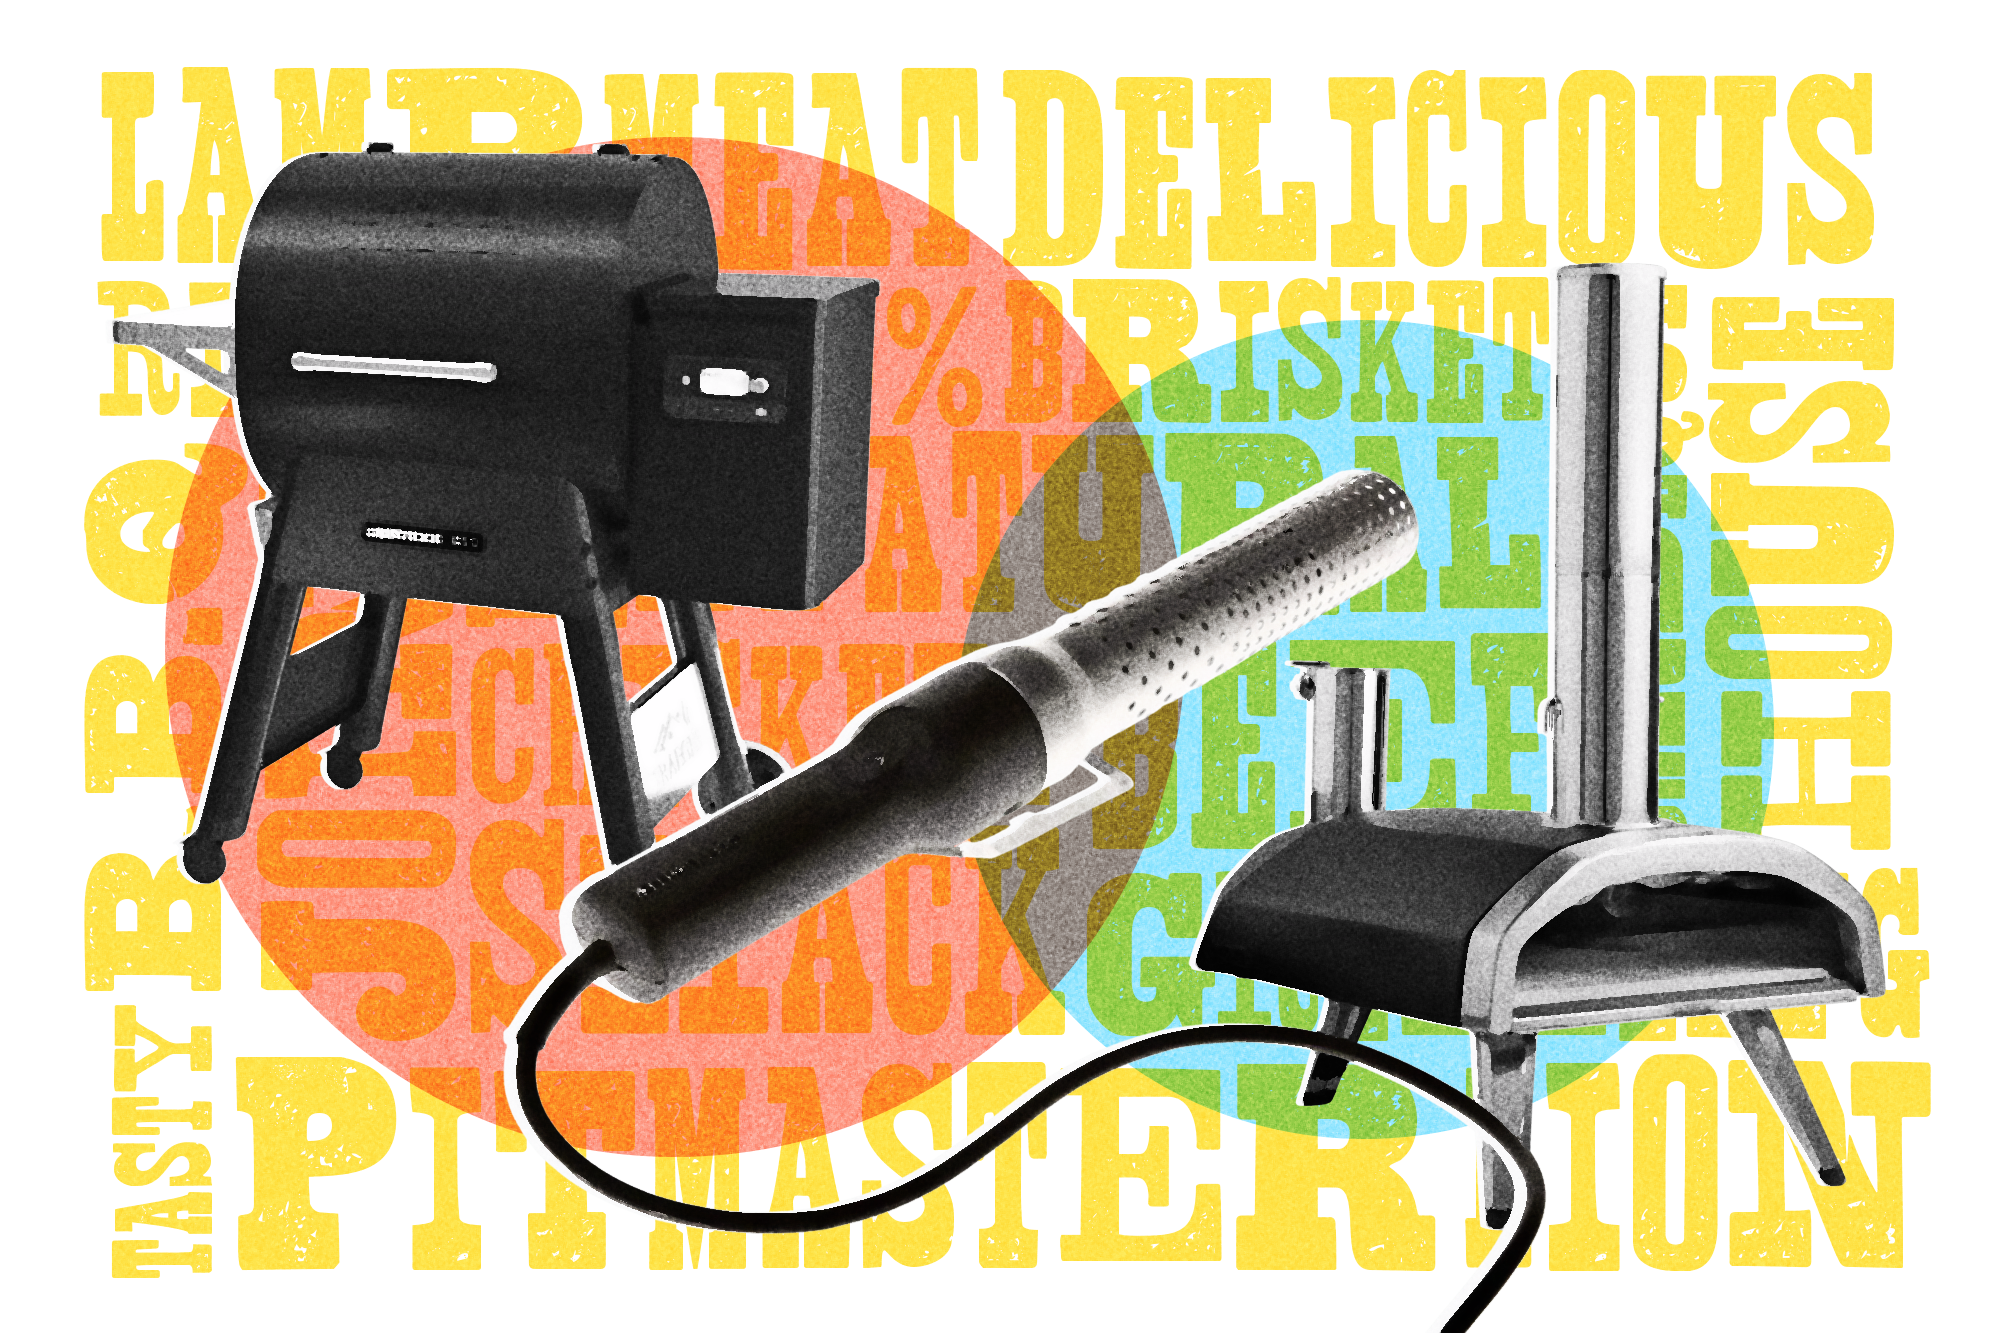 composite of high tech barbeque gadgets: pellet grill, electric charcoal starter, pizza oven